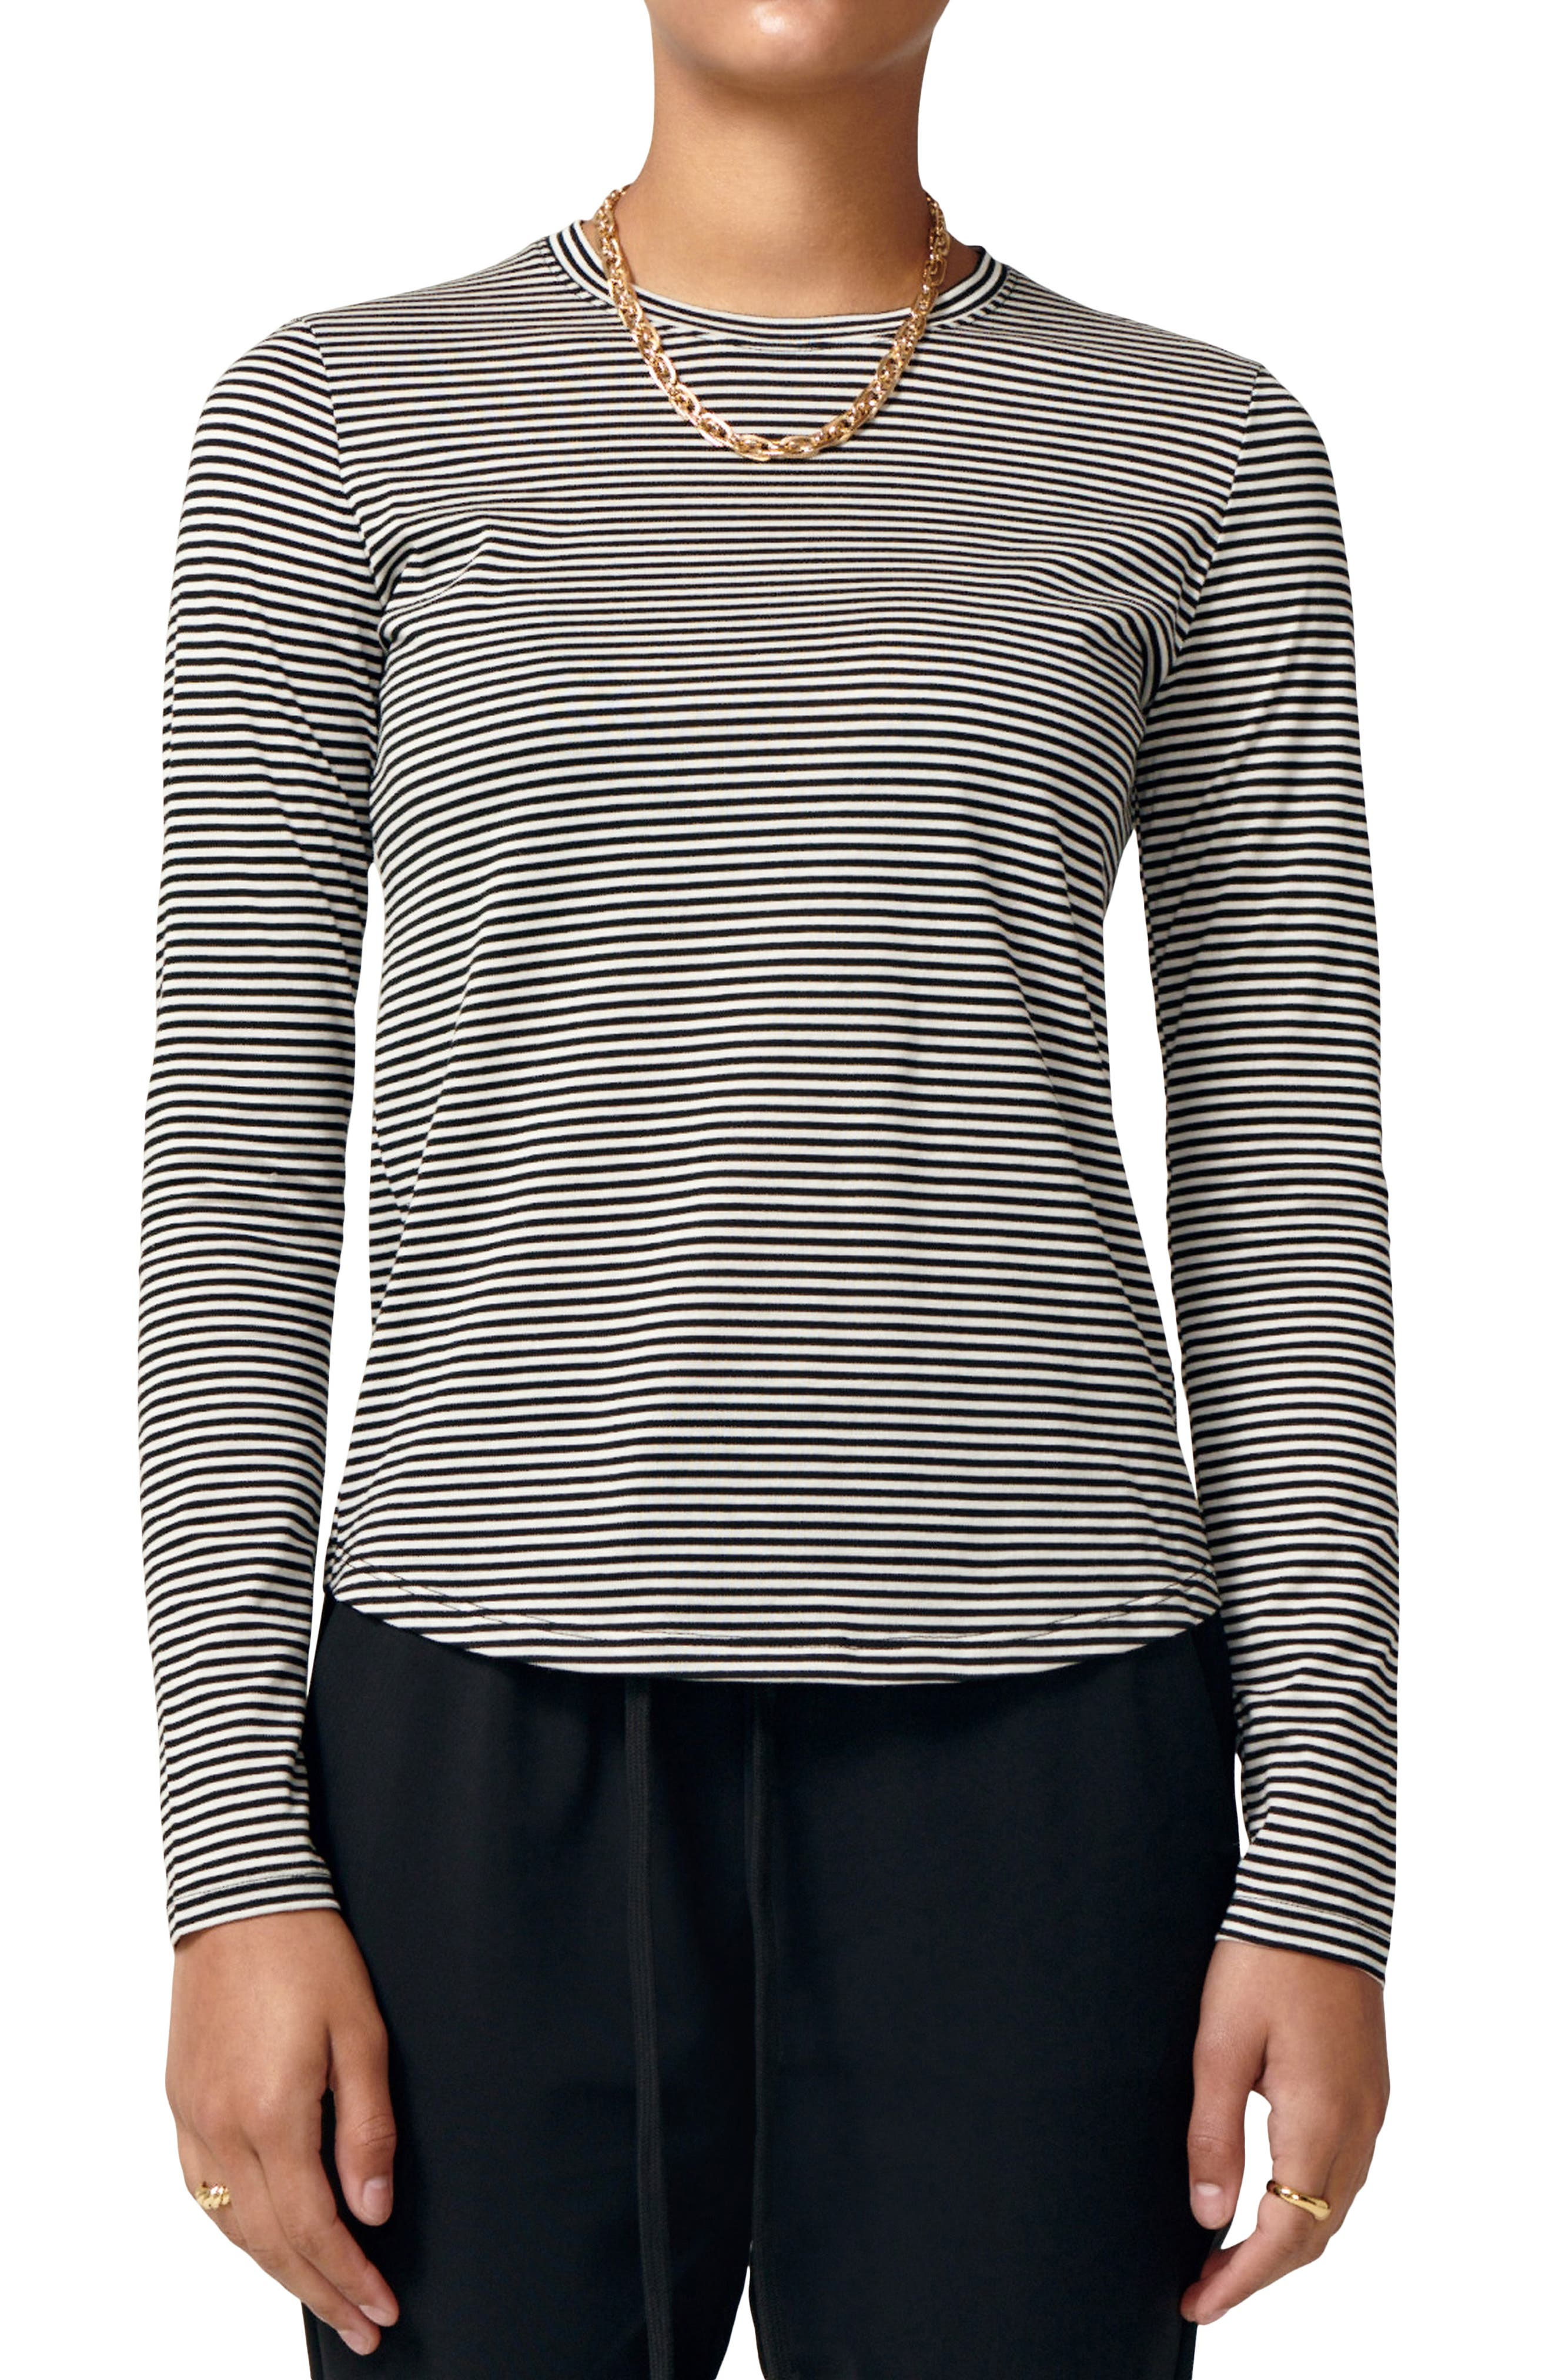 In Love Long Sleeve Cotton T-Shirt